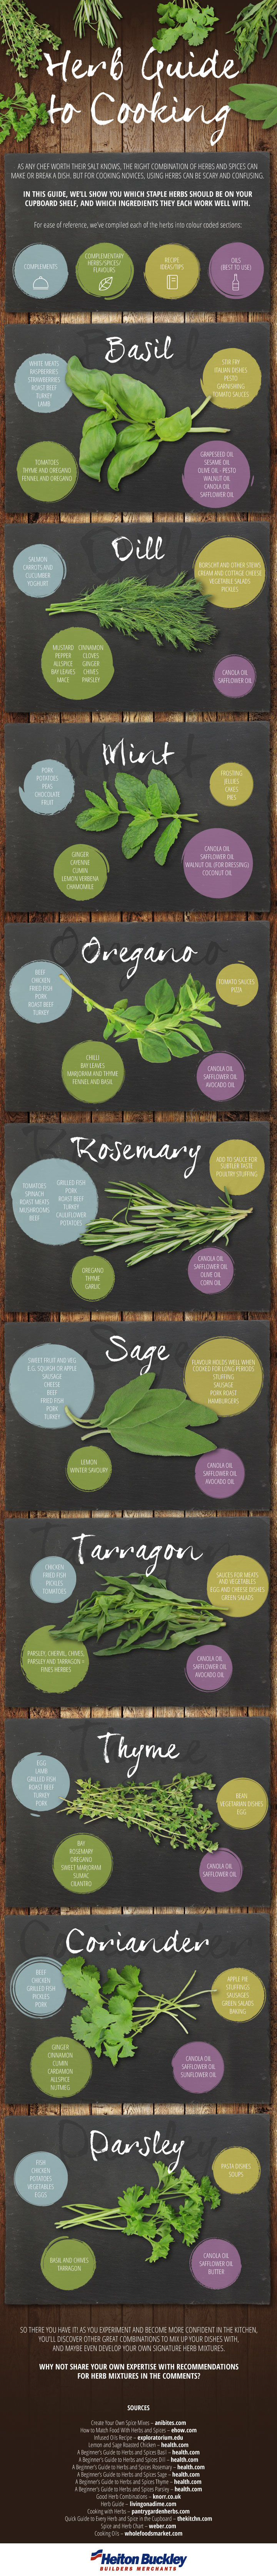 My herb garden is growing so quickly.. I'll be referencing this little info-graphic herb index frequently!    The entire article can be found in the link below, along with some other really great blog posts & articles. Enjoy!  http://www.mindbodygreen.com/0-14394/a-guide-to-using-herbs-when-you-cook-infographic.html